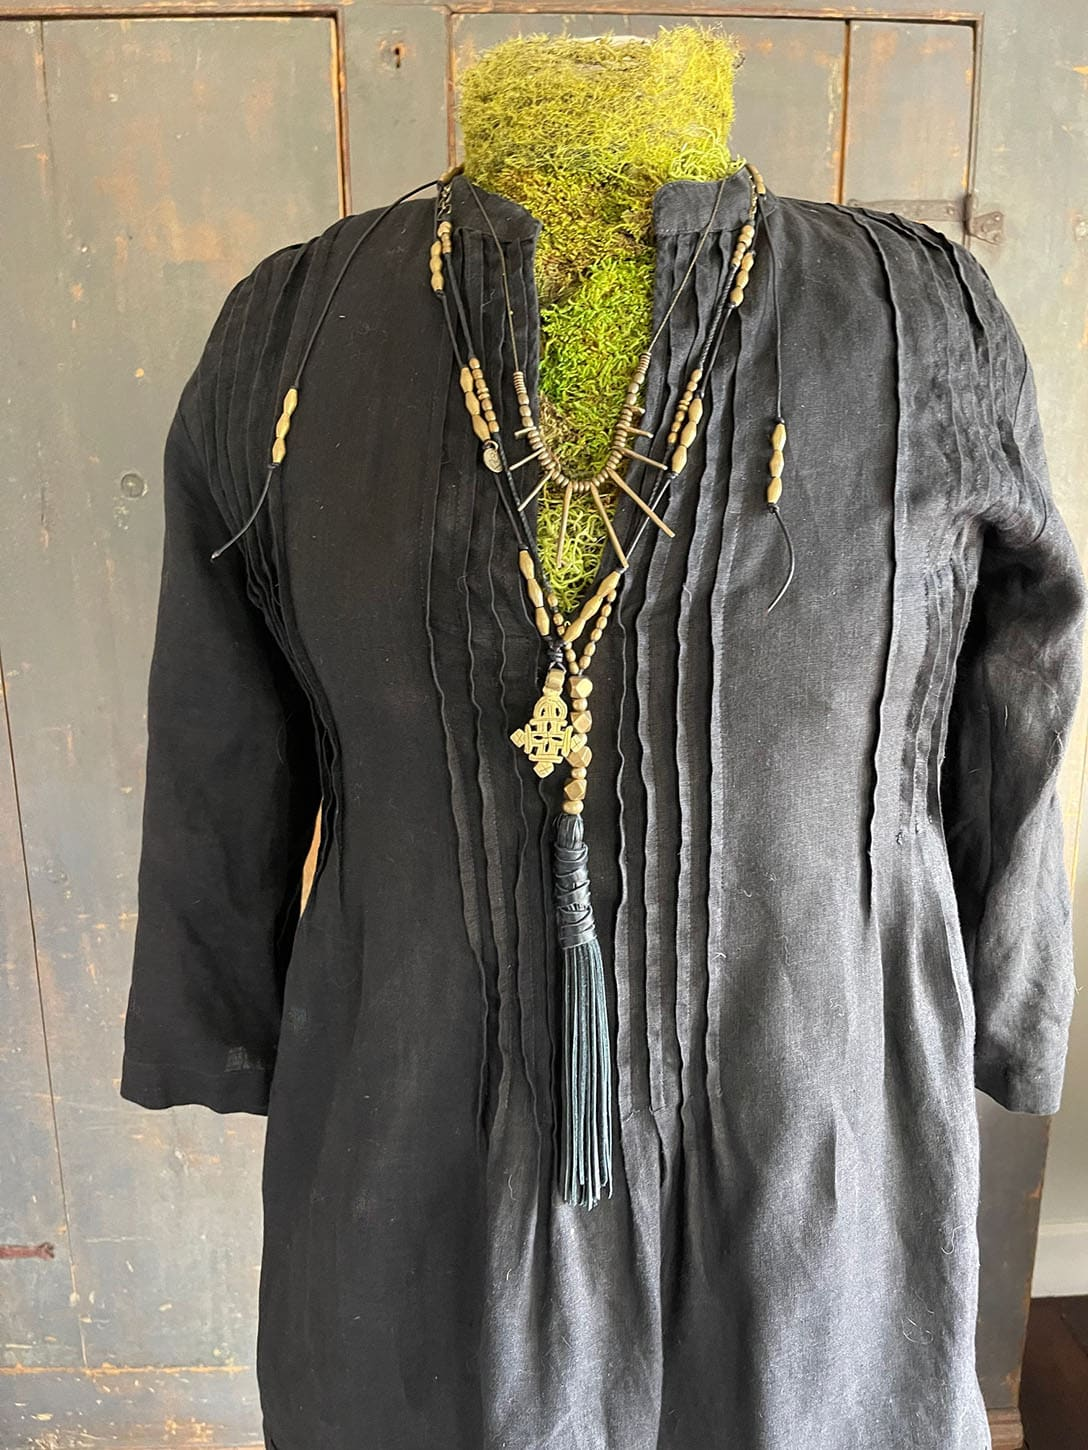 Black and brass layering necklaces on Cindy Hattersley's blog